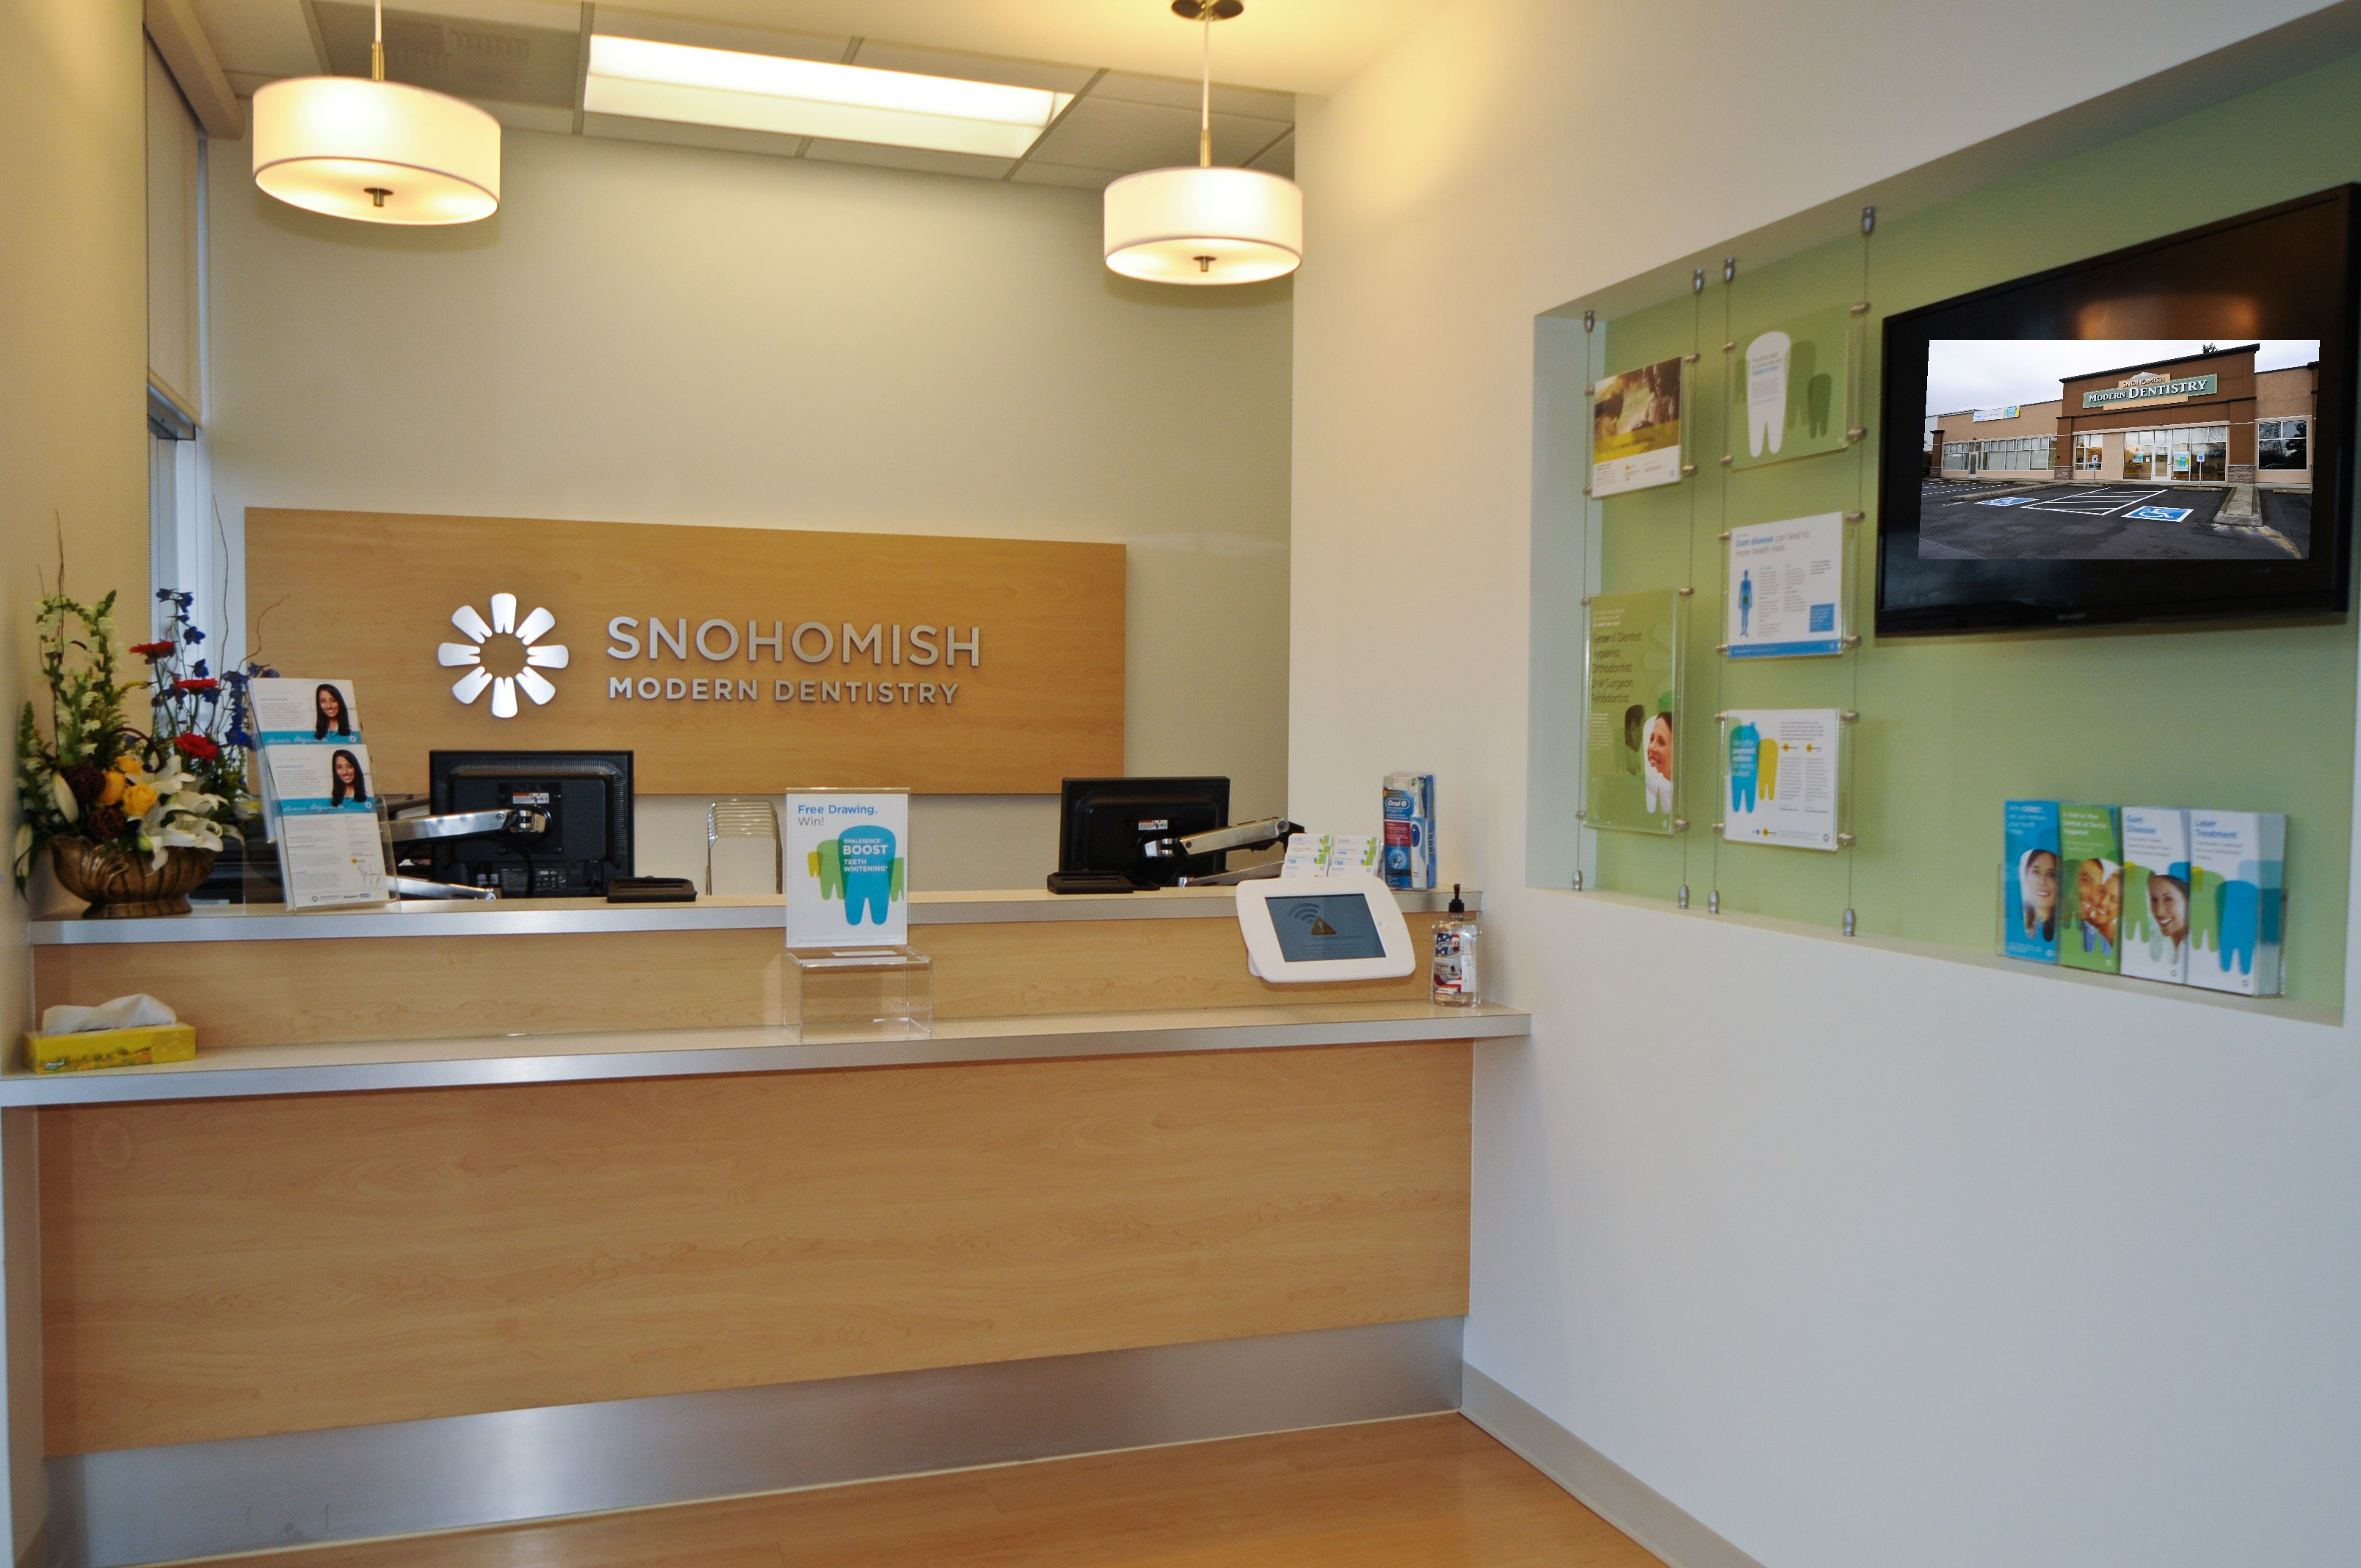 Snohomish Modern Dentistry opened its doors to the Snohomish community in November 2014.